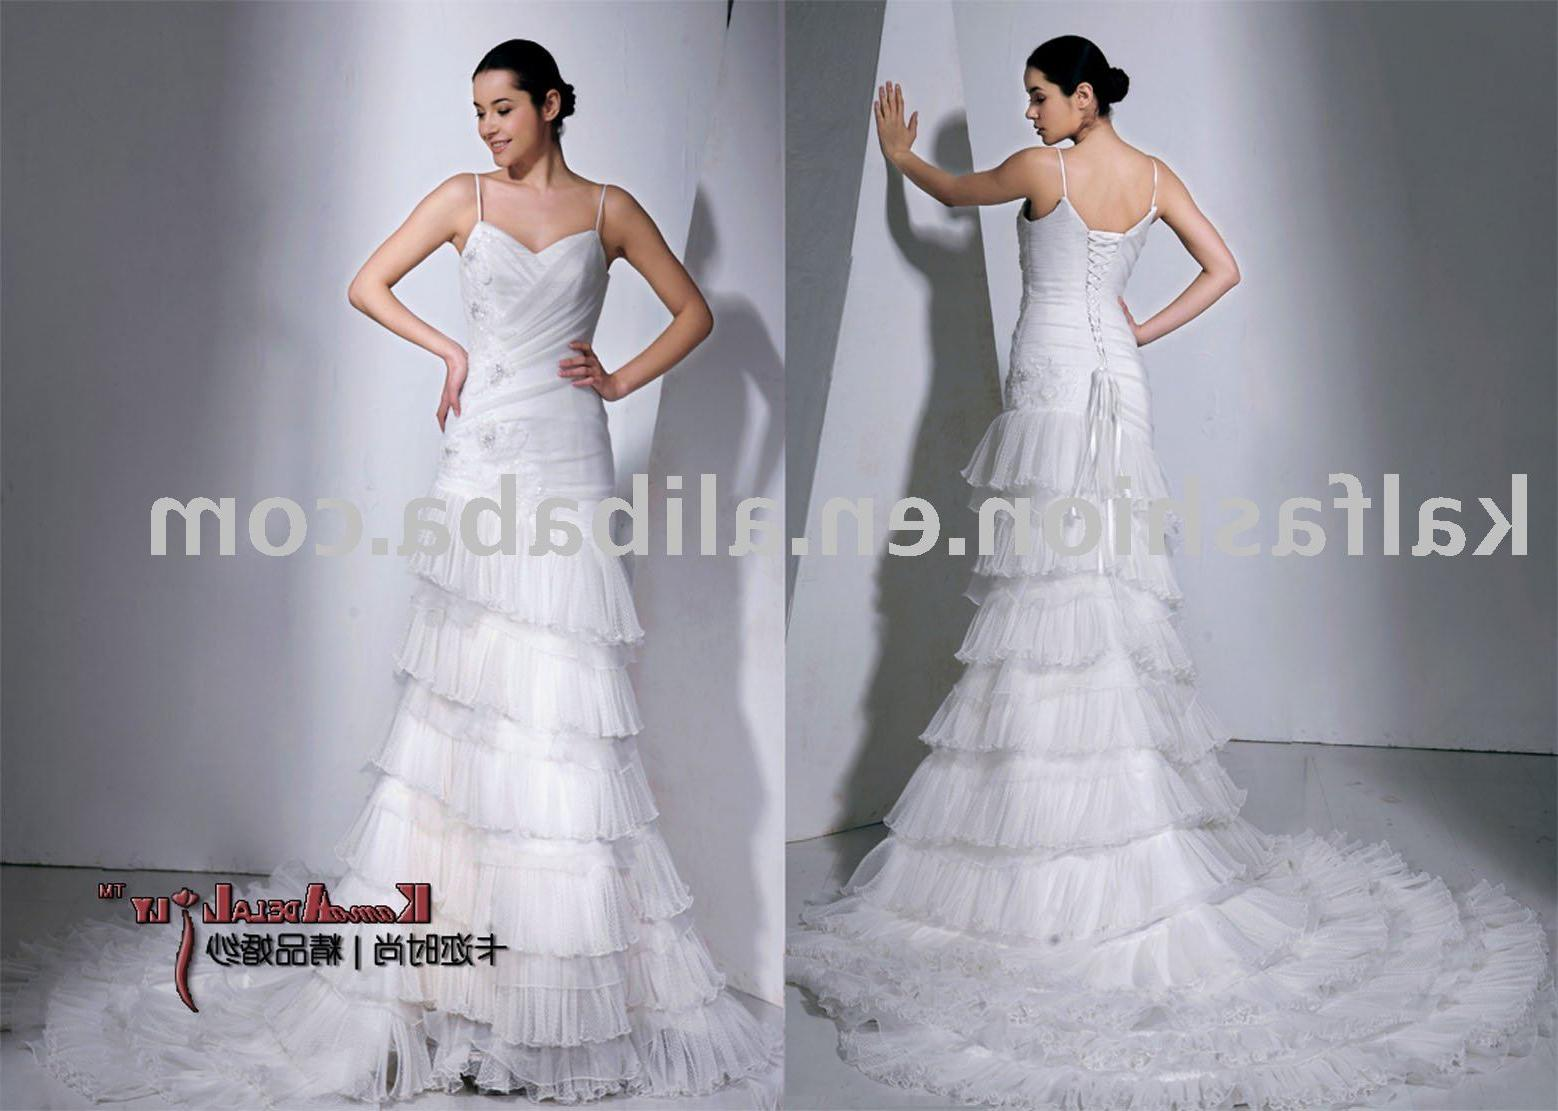 dress petite wedding gown